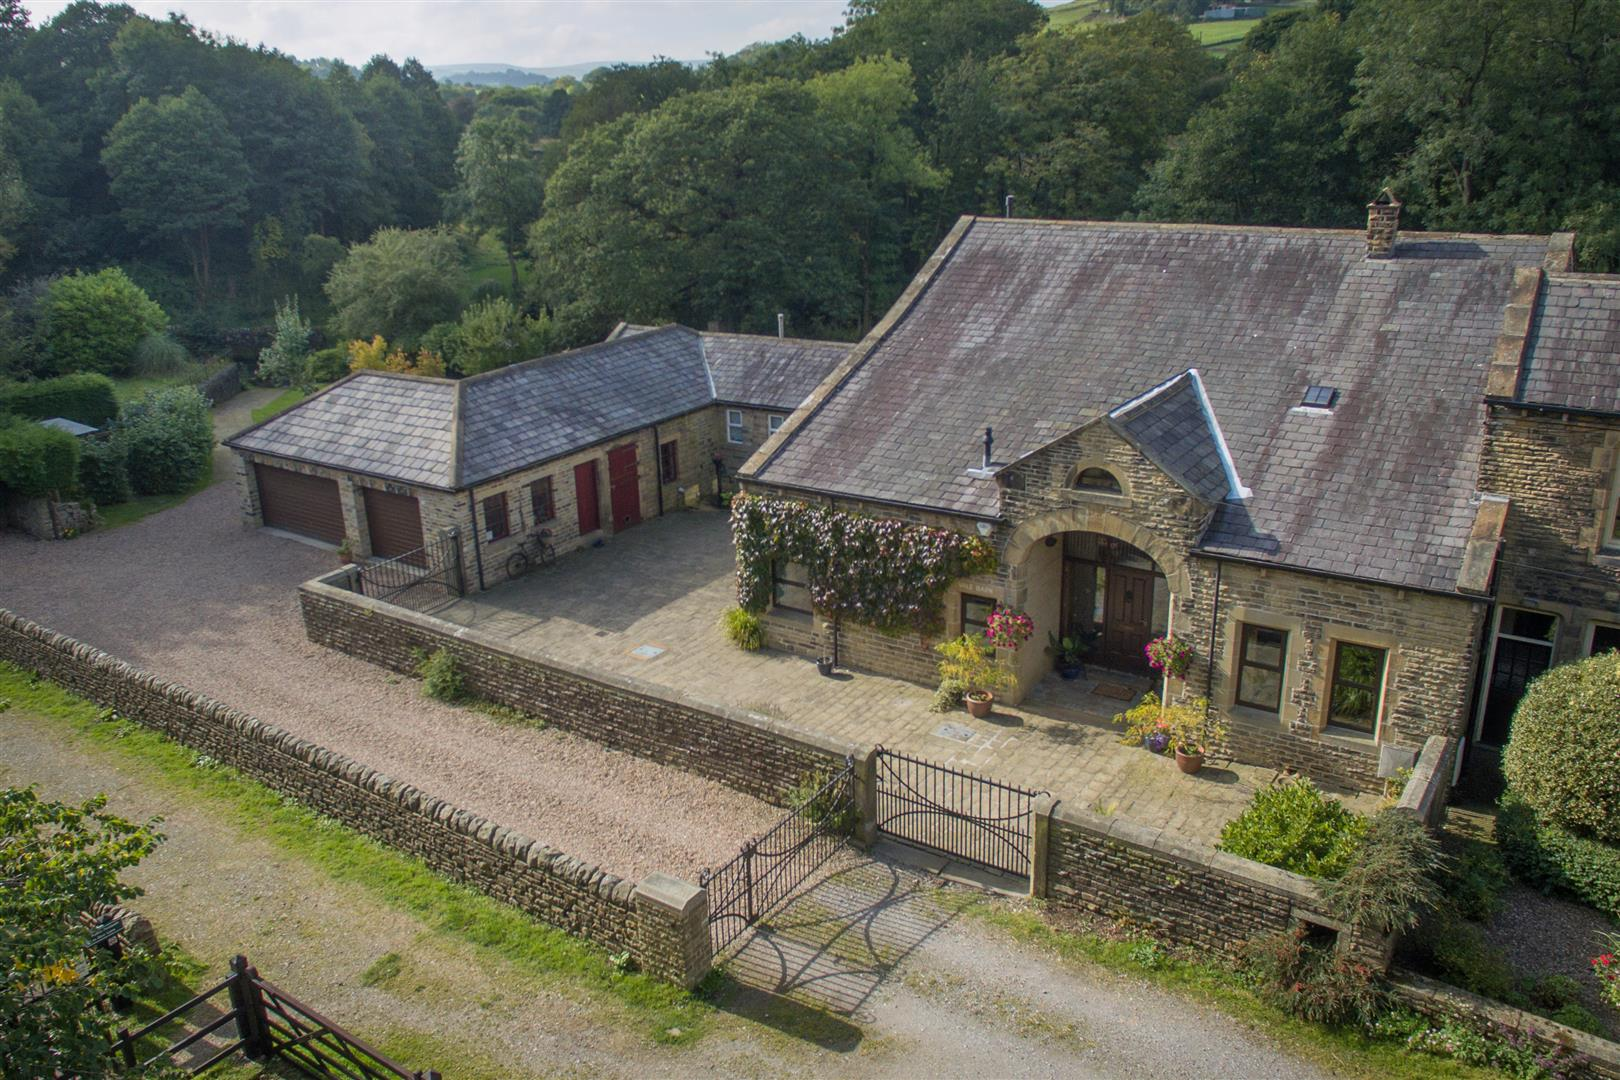 Vale Barn, Mytholmes Lane, Haworth, BD22 0EE